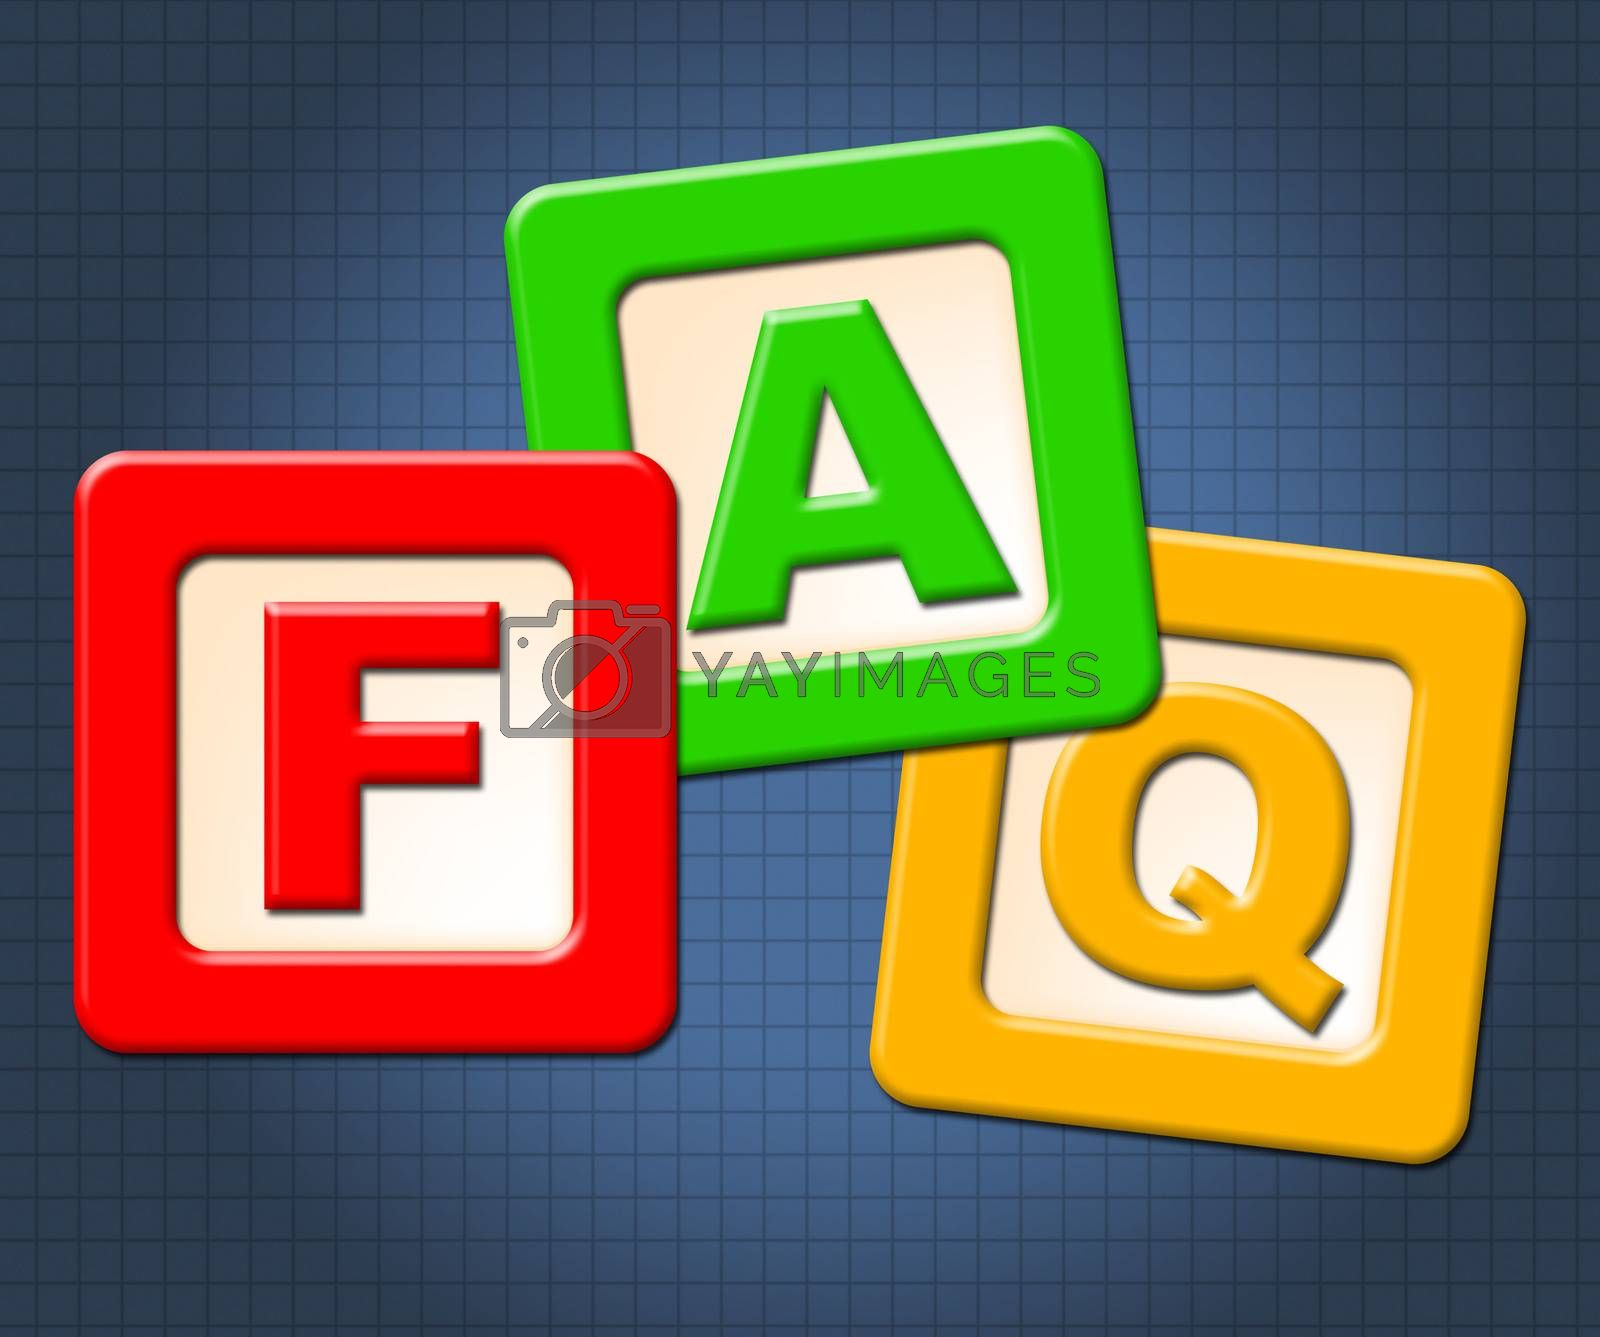 Faq Kids Blocks Means Frequently Asked Questions And Counselling by stuartmiles